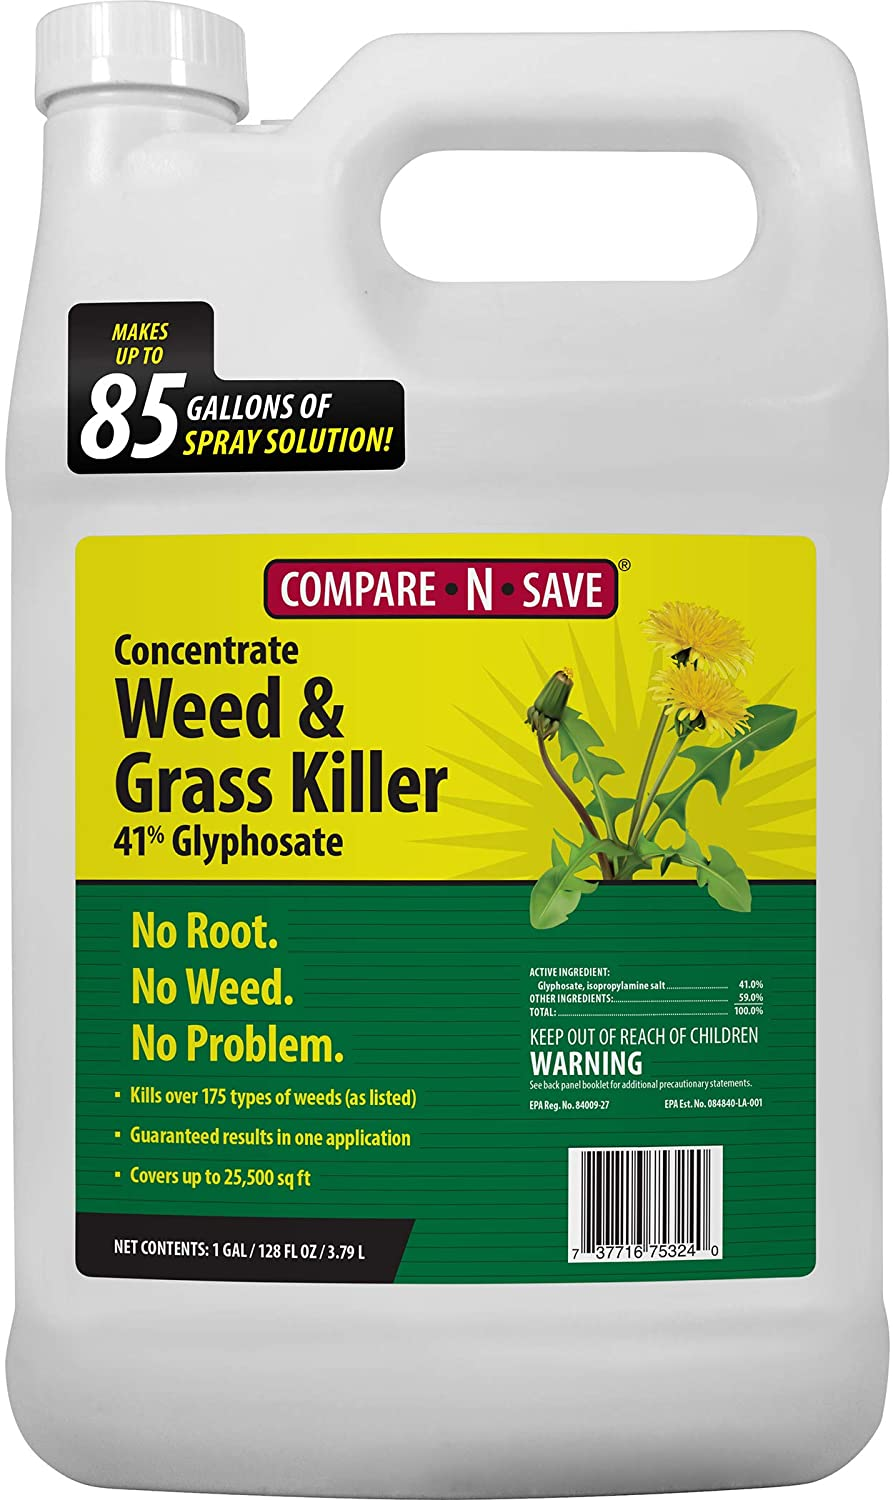 Best Weed Killer for Flower Beds Reviews and Buying Guide 2020